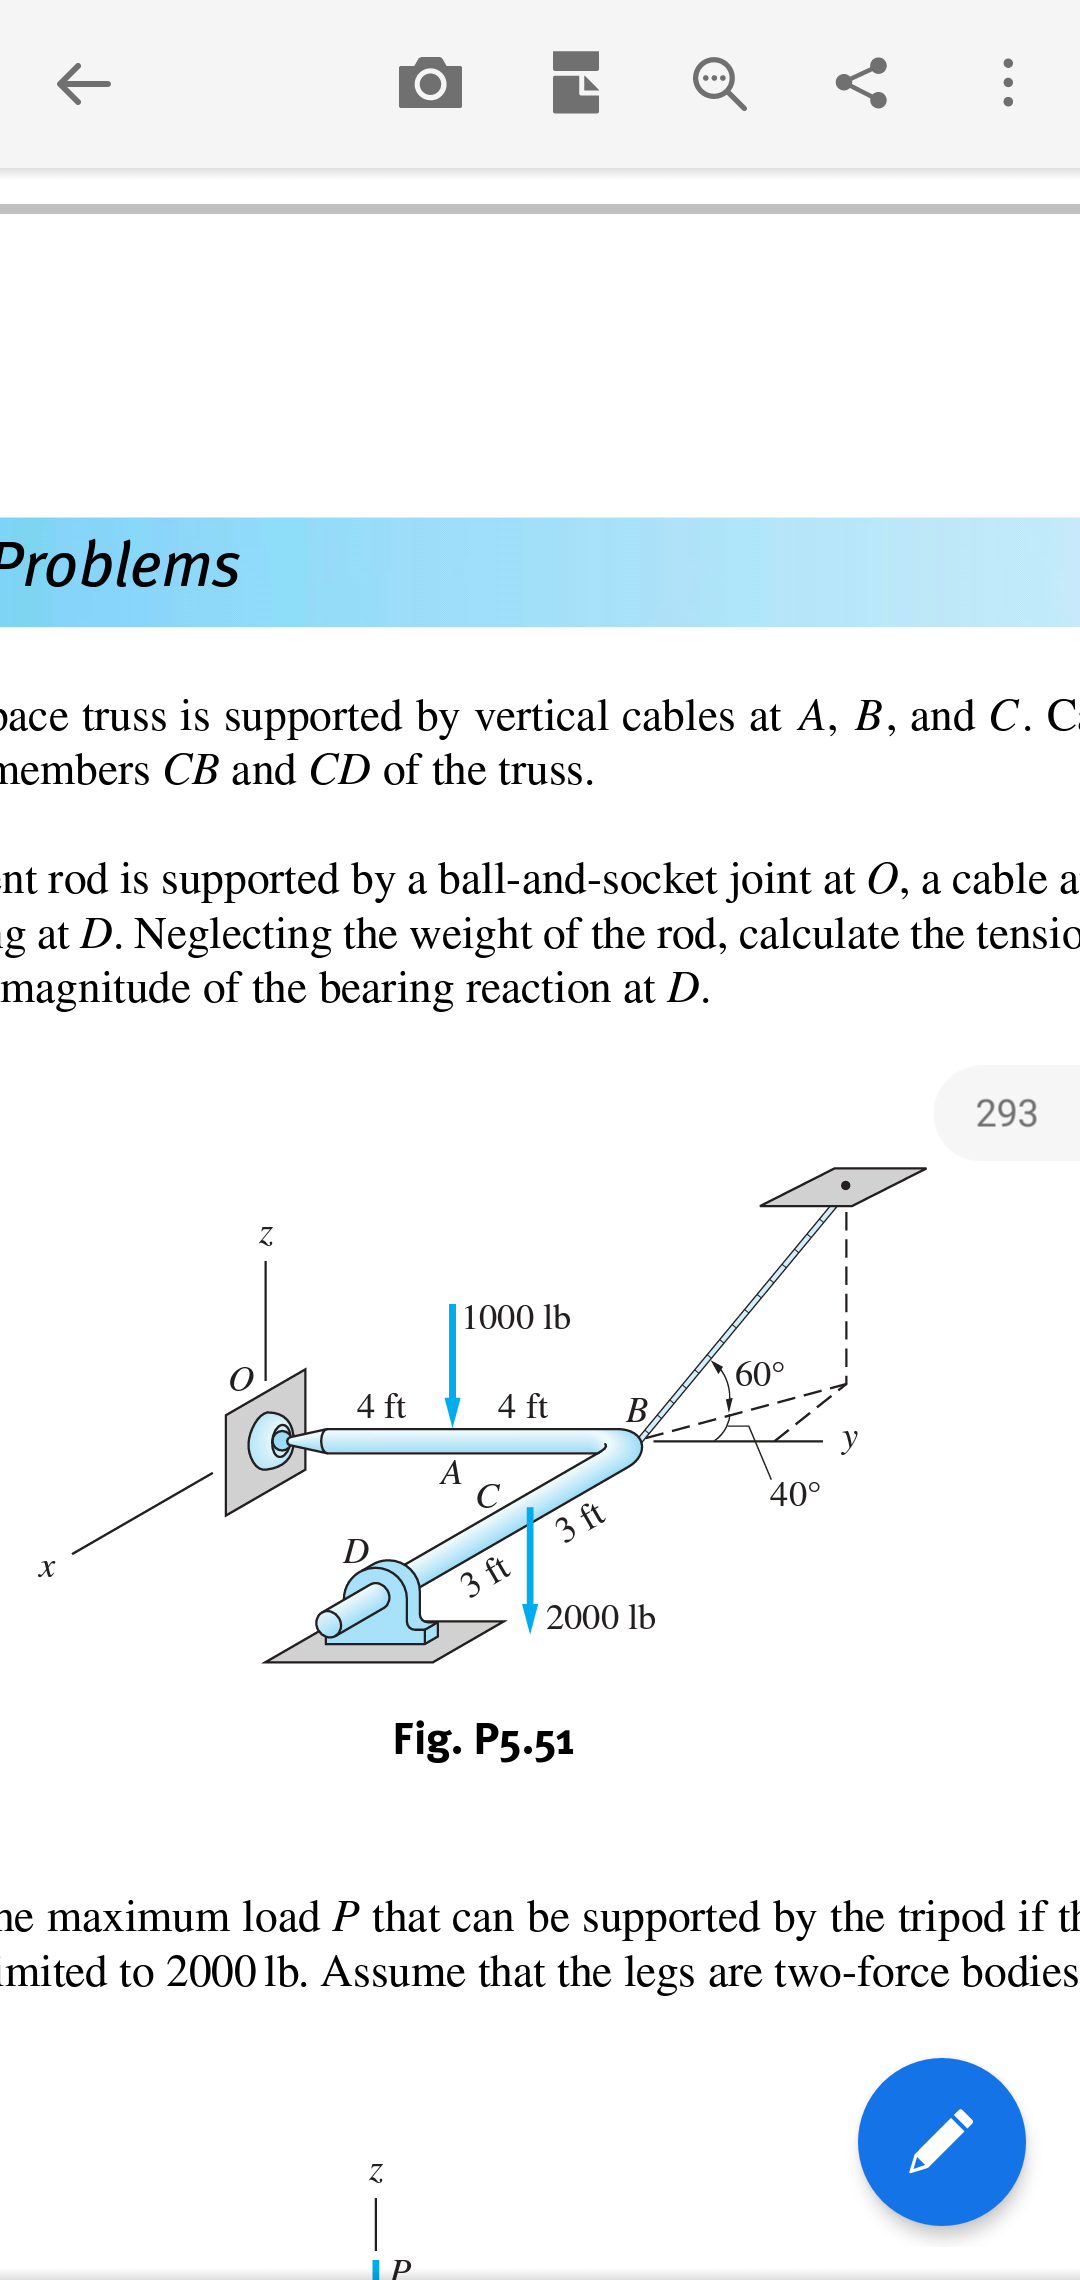 Problems ace truss is supported by vertical cables at A, B, and C. C. members CB and CD of the truss. nt rod is supported by a ball-and-socket joint at 0, a cable a -g at D. Neglecting the weight of the rod, calculate the tensio magnitude of the bearing reaction at D 293 Z. |1000 lb 60° 4 ft 4 ft В, А С 400 3 ft D 3 ft 2000 lb Fig. P5.51 ne maximum load P that can be supported by the tripod if th mited to 2000 lb. Assume that the legs are two-force bodies Z | ГP